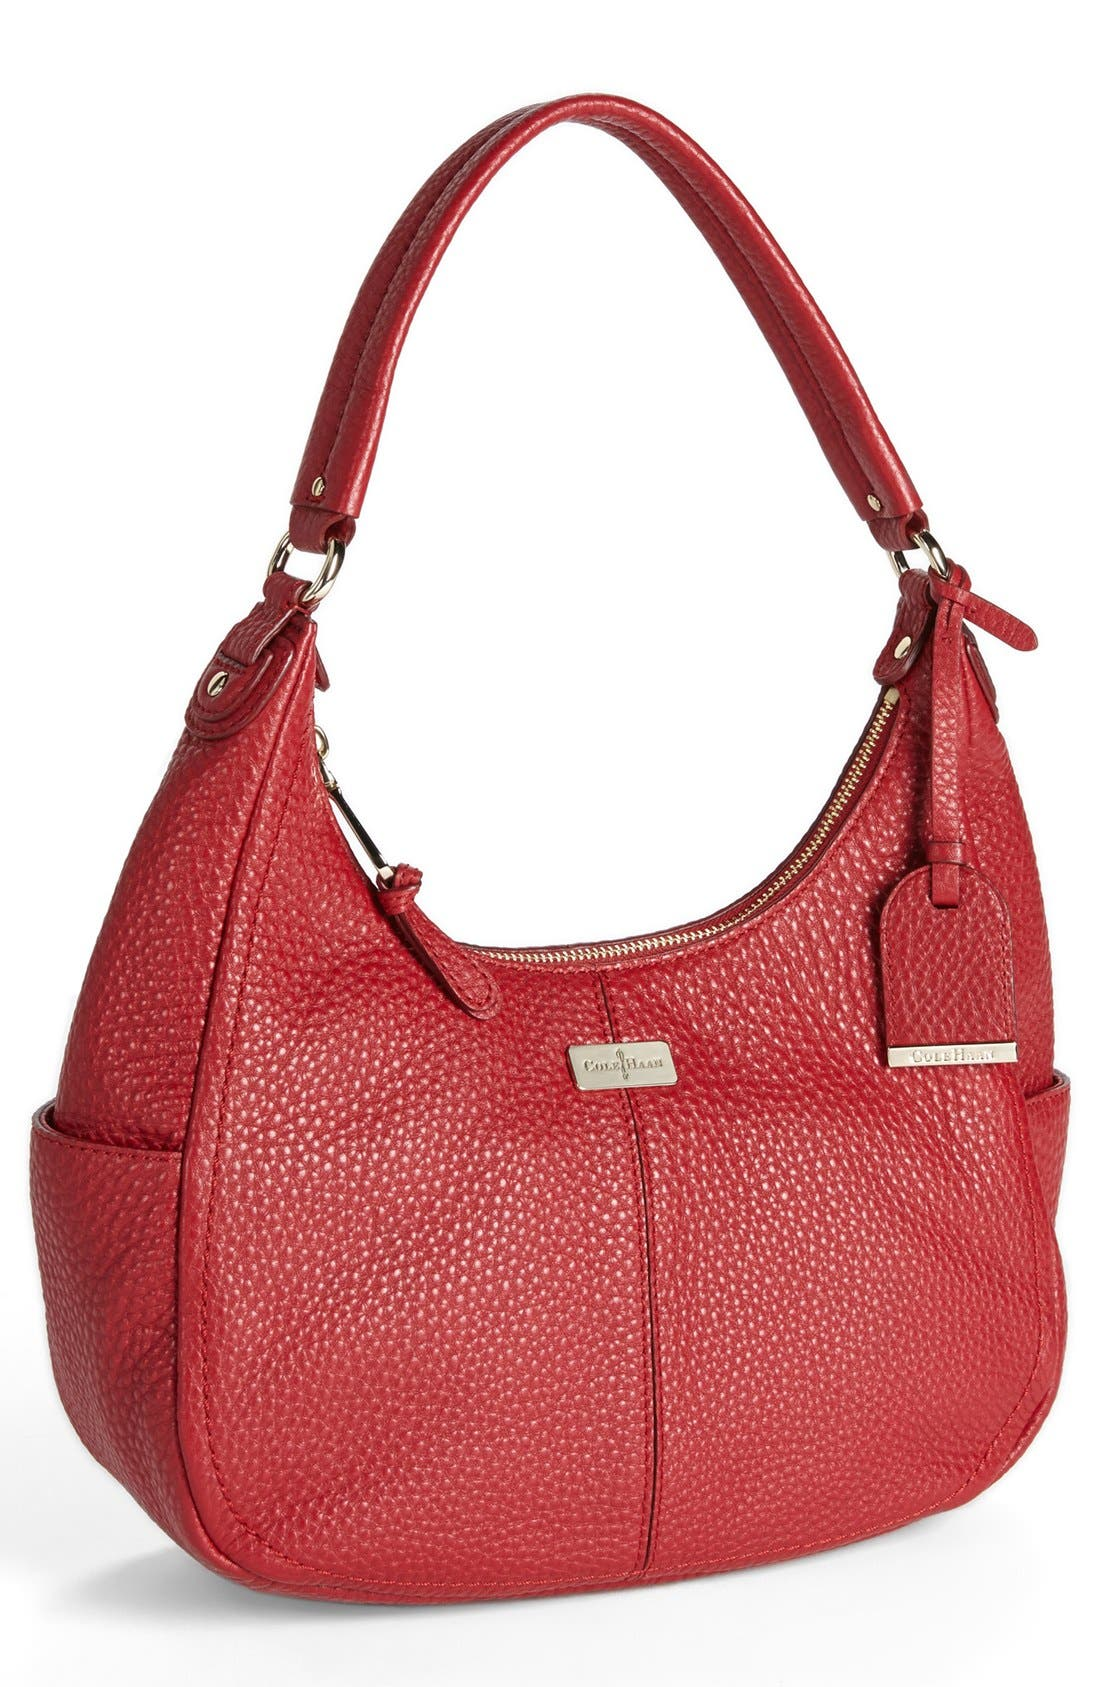 Main Image - Cole Haan 'Village - Small' Hobo